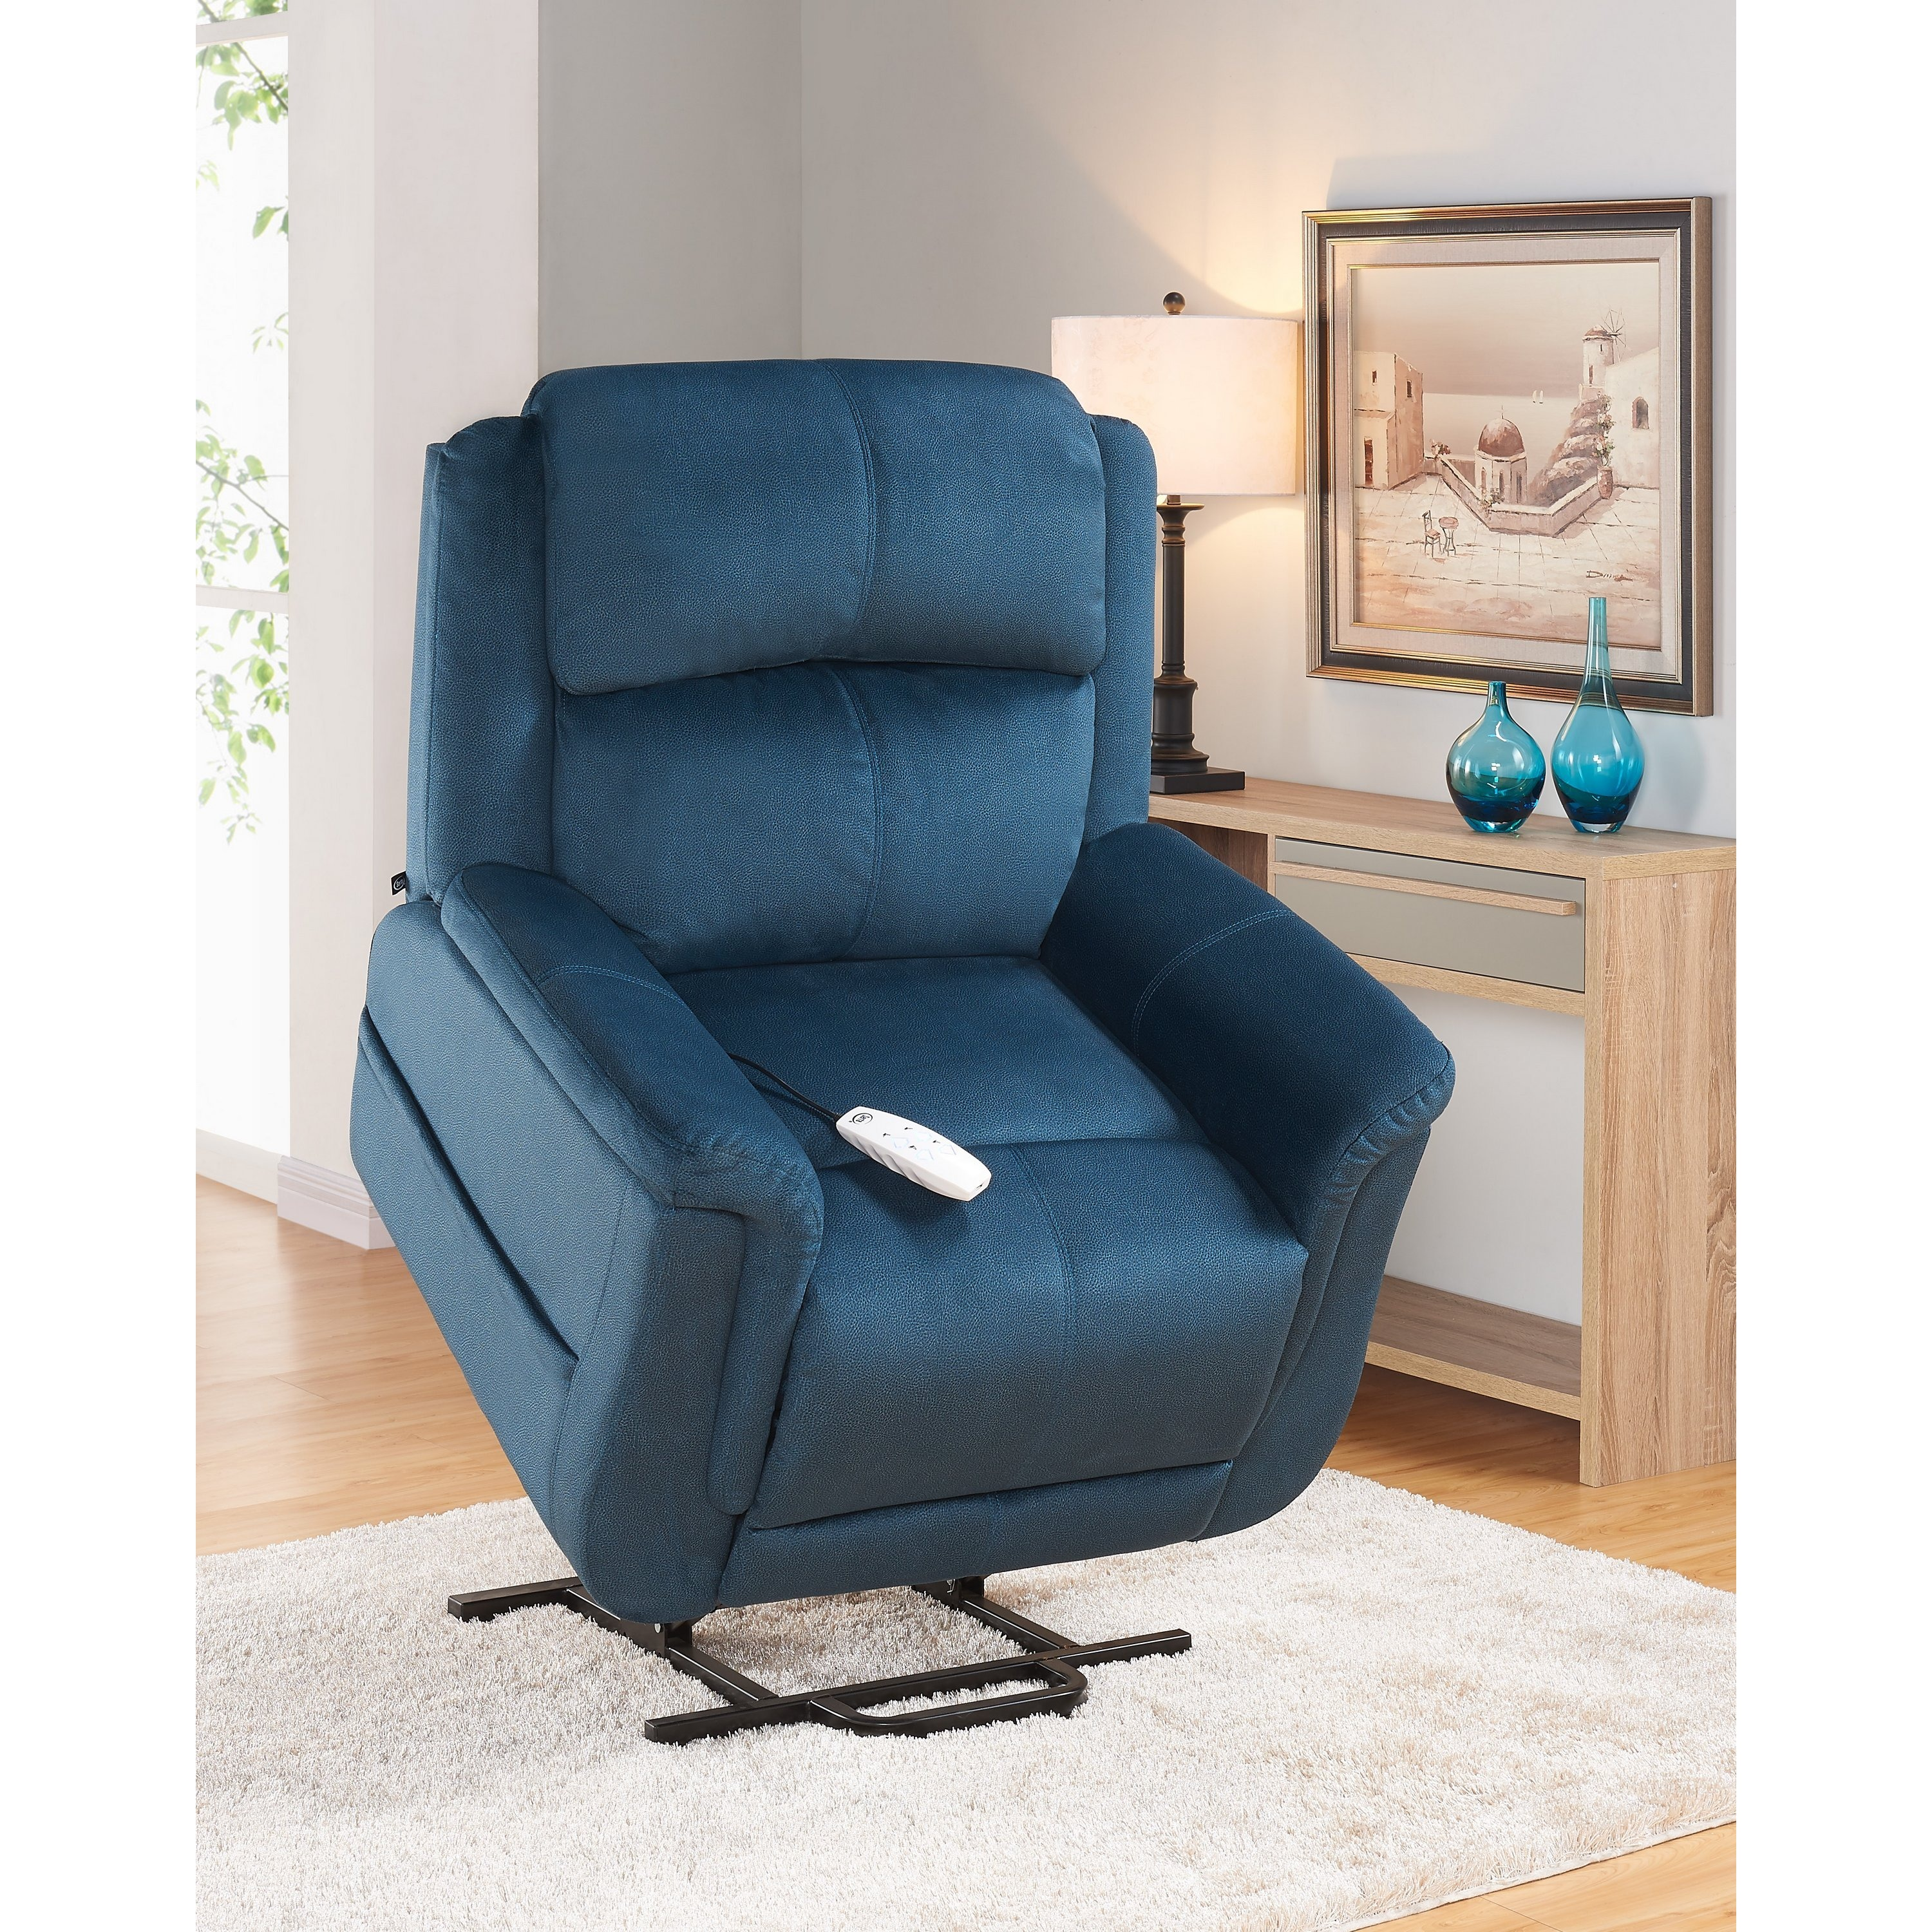 Serta Comfort Lift H&ton Two Motor Infinite Position Po.  sc 1 st  Nextag & Infinite position recliner power lift chair | Chairs | Compare ... islam-shia.org